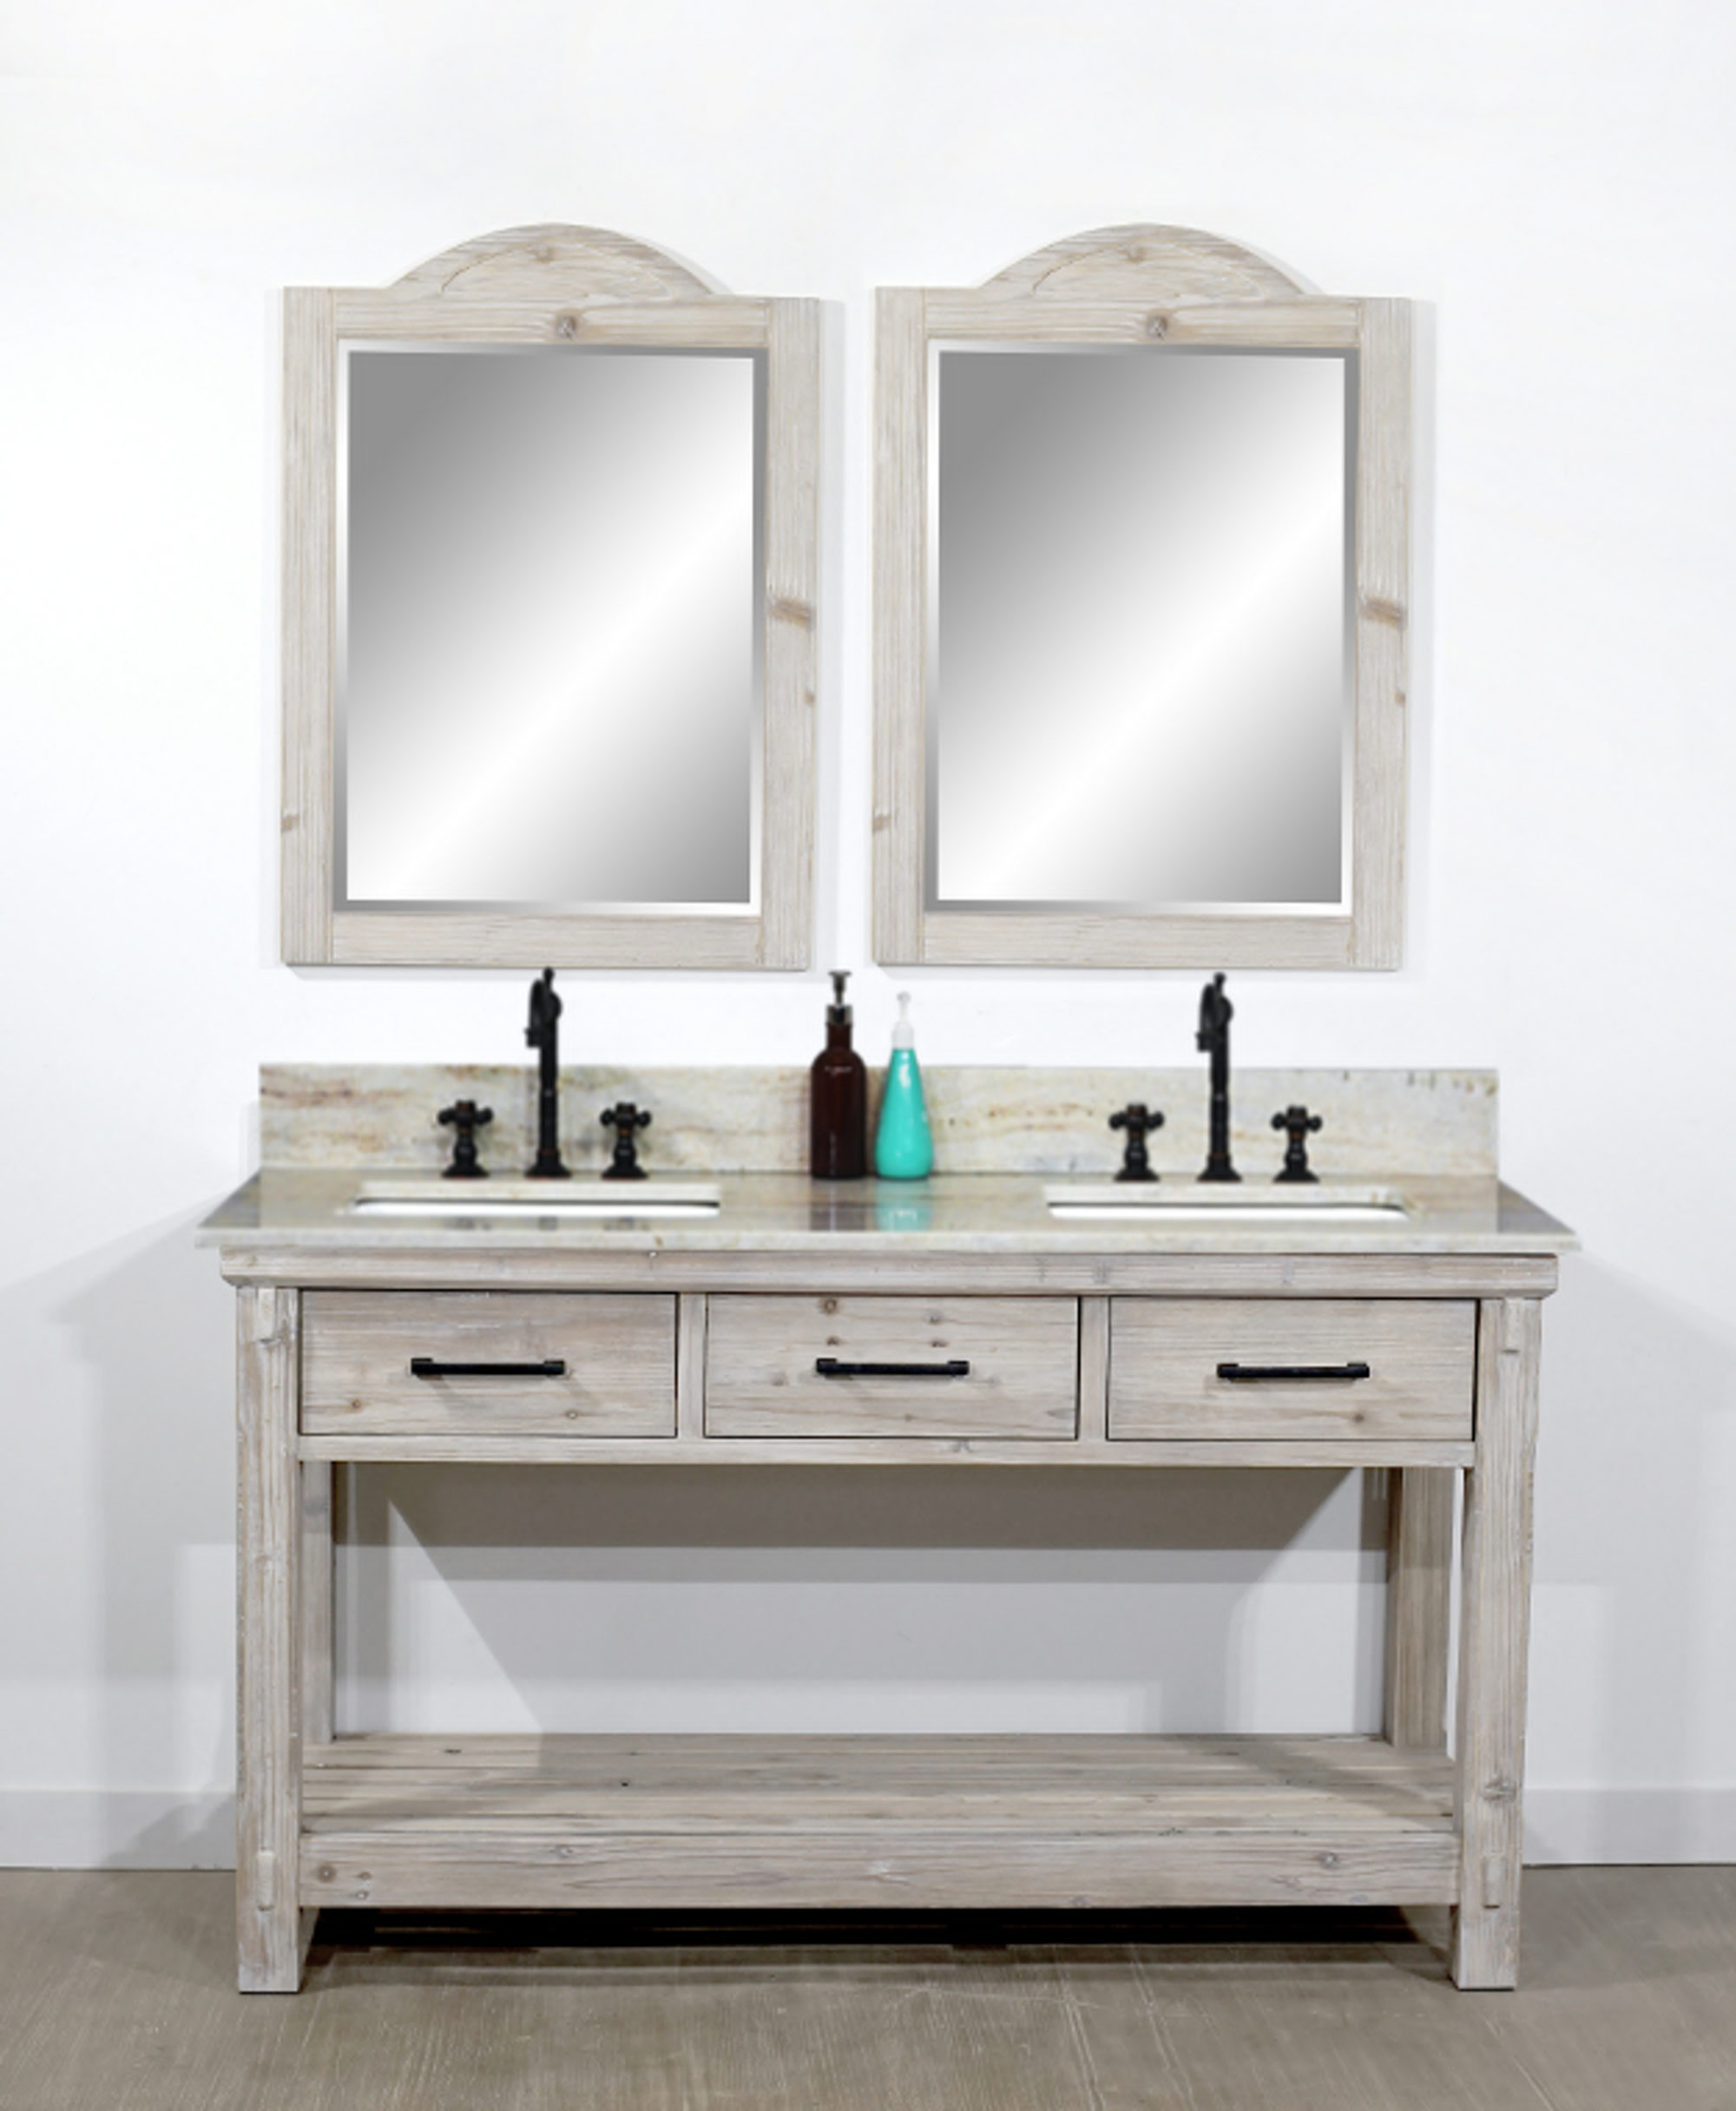 "60"" Rustic Solid Fir Double Sink Bathroom Vanity - No Faucet with Countertop Options"